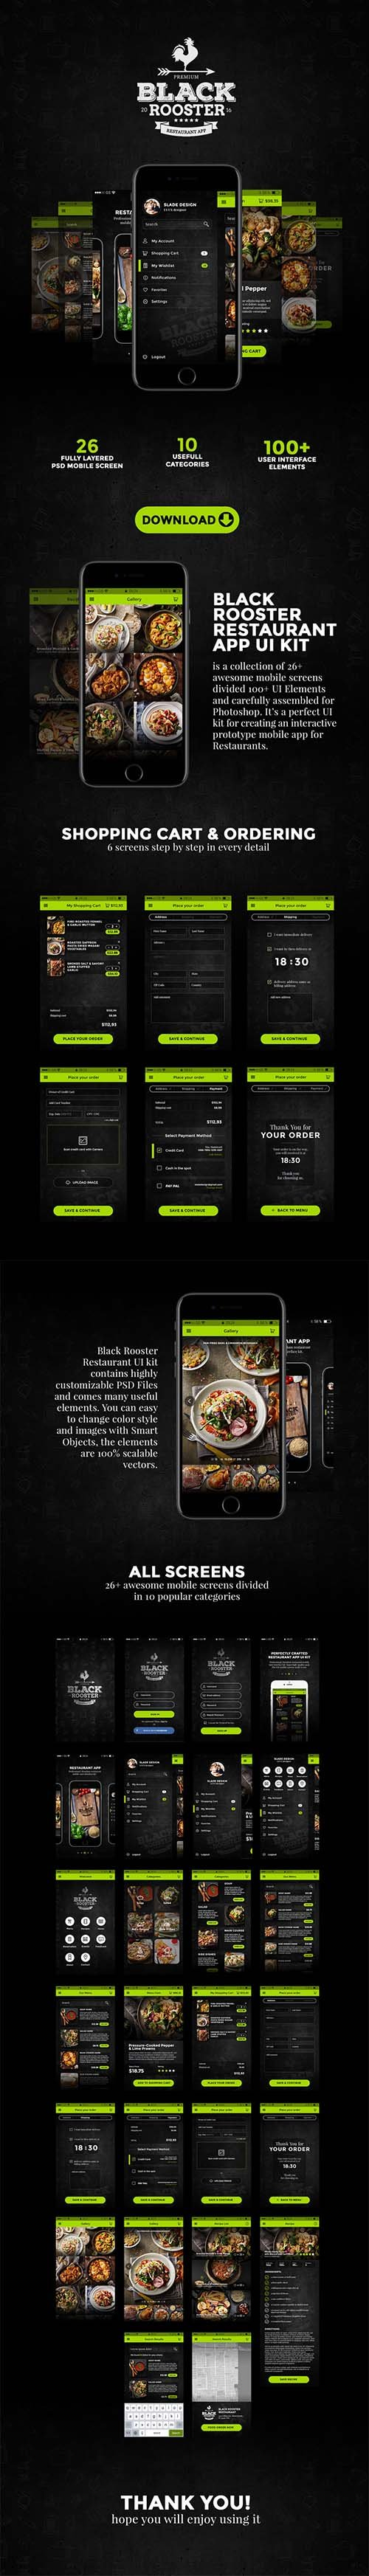 Black Rooster - Professional Restaurant App UI Kit